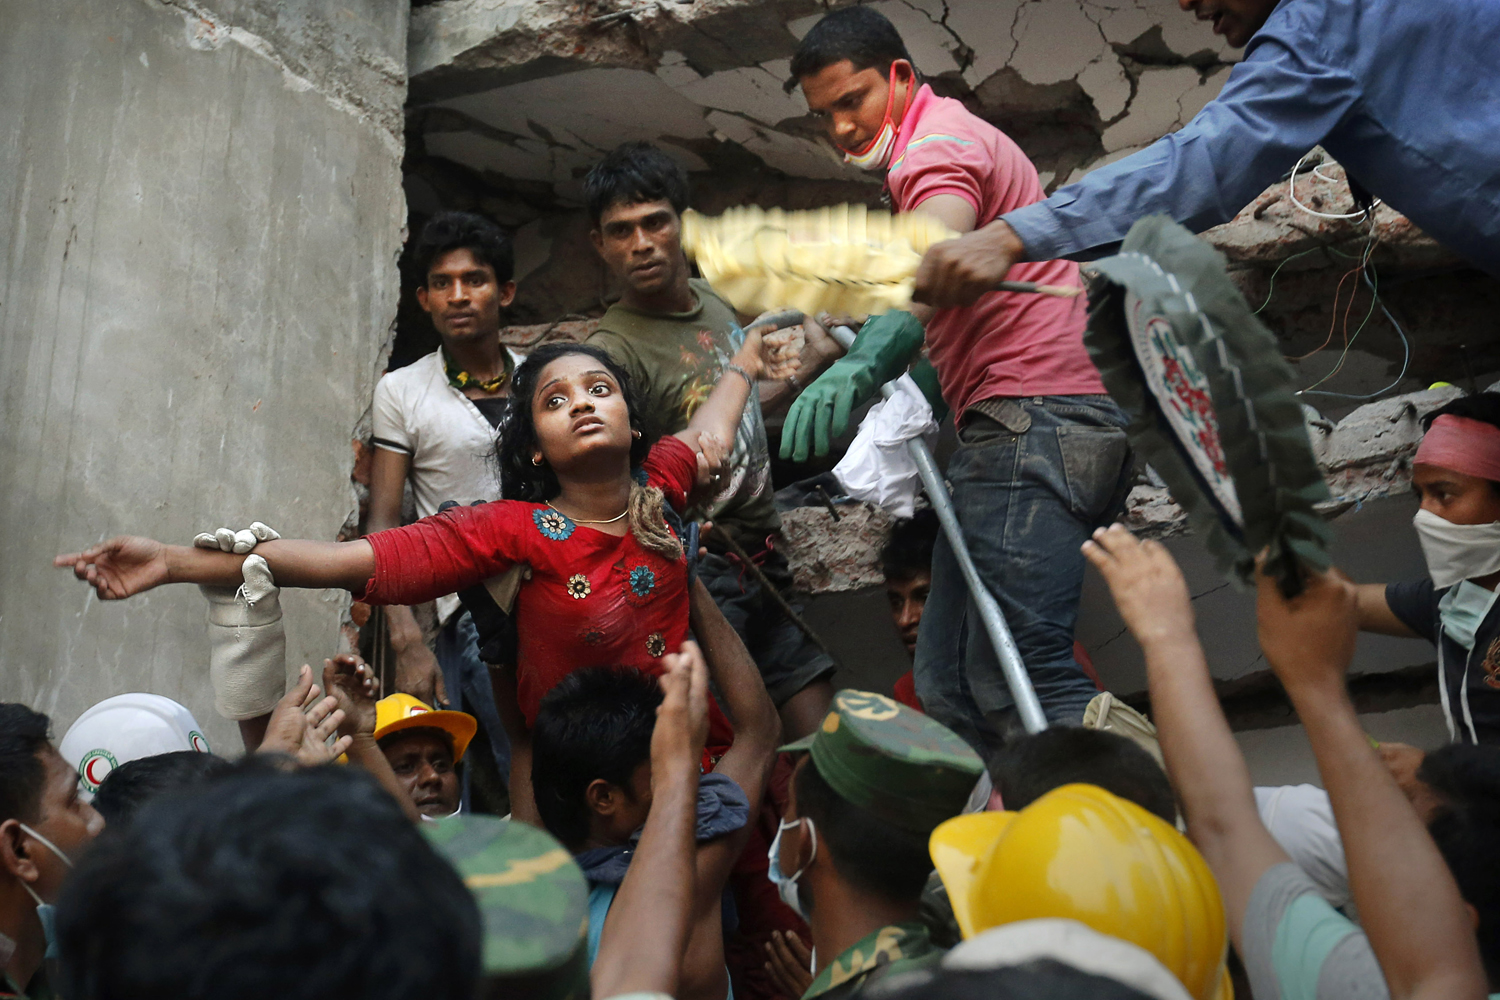 April 25, 2013. A Bangladeshi woman survivor is lifted out of the rubble by rescuers at the site of a building that collapsed in Savar, near Dhaka.